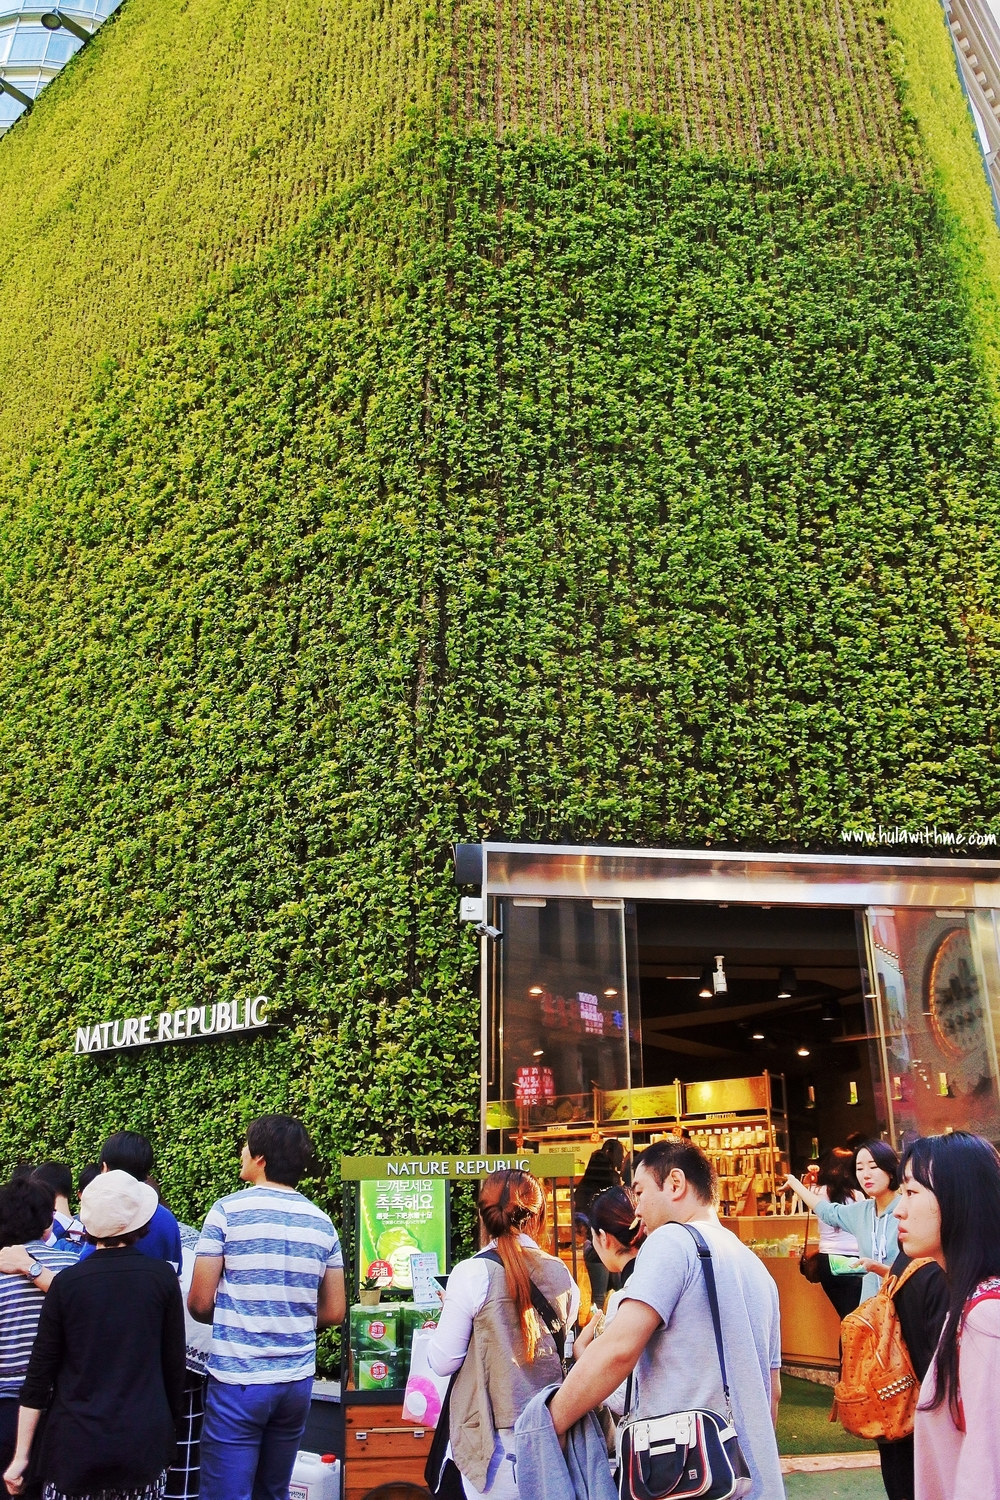 Nature Republic store in Myeongdong, Seoul.